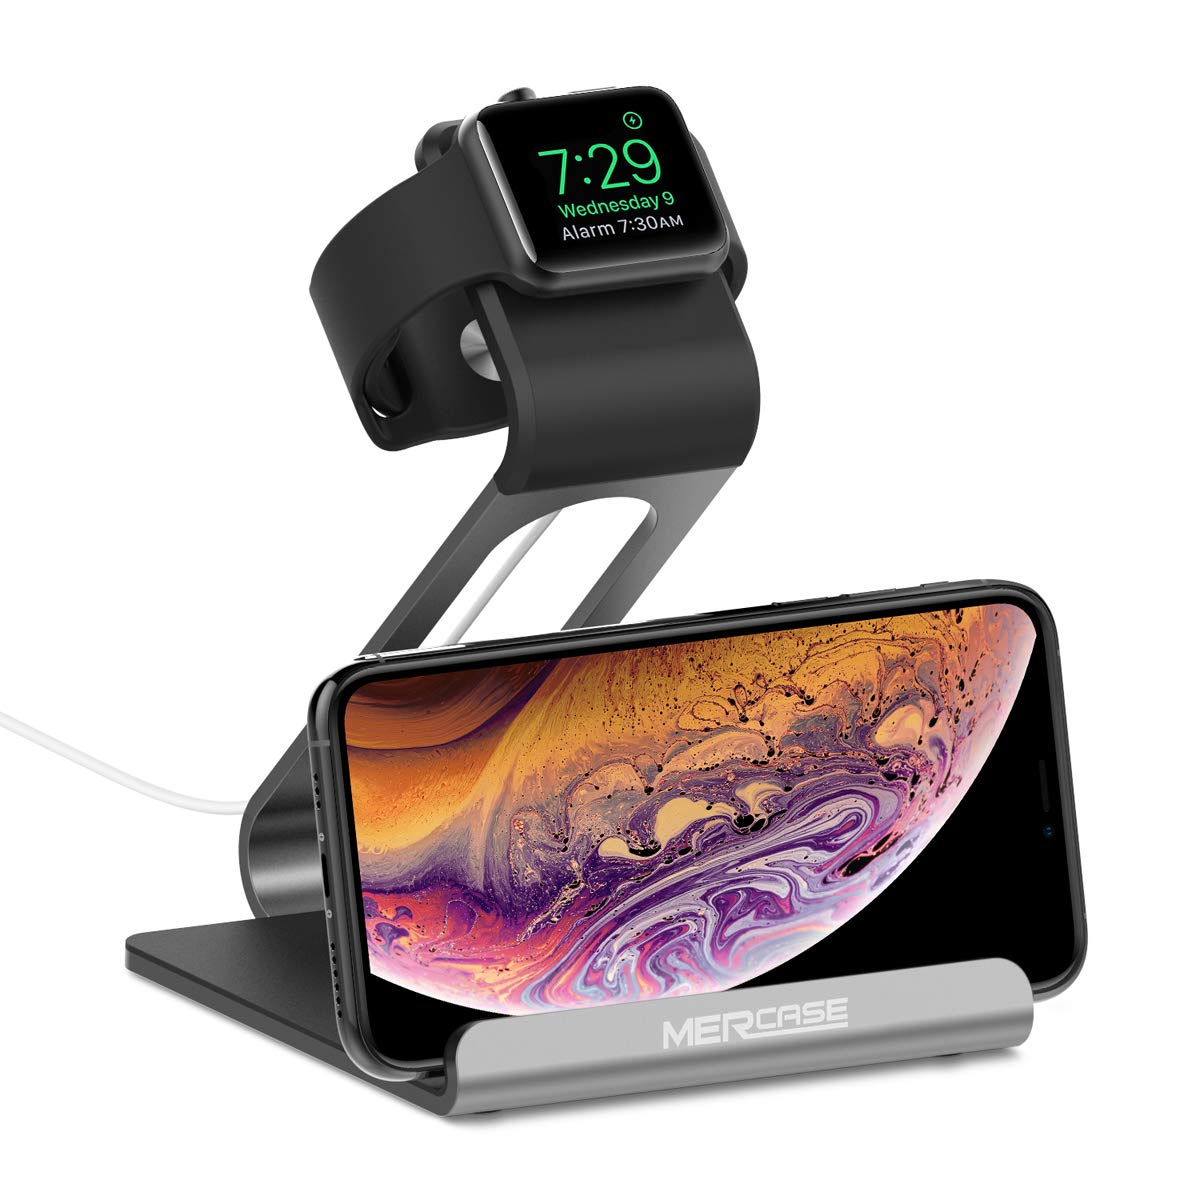 Mercase Apple Watch Stand with Nightstand Mode, 2 in 1 Charging Station Docking Holder for iWatch Series 4/3/2/1 and iPhone Xs/X Max/XR/X/8/8Plus/7/7 Plus/6/6S - Space Grey by Mercase